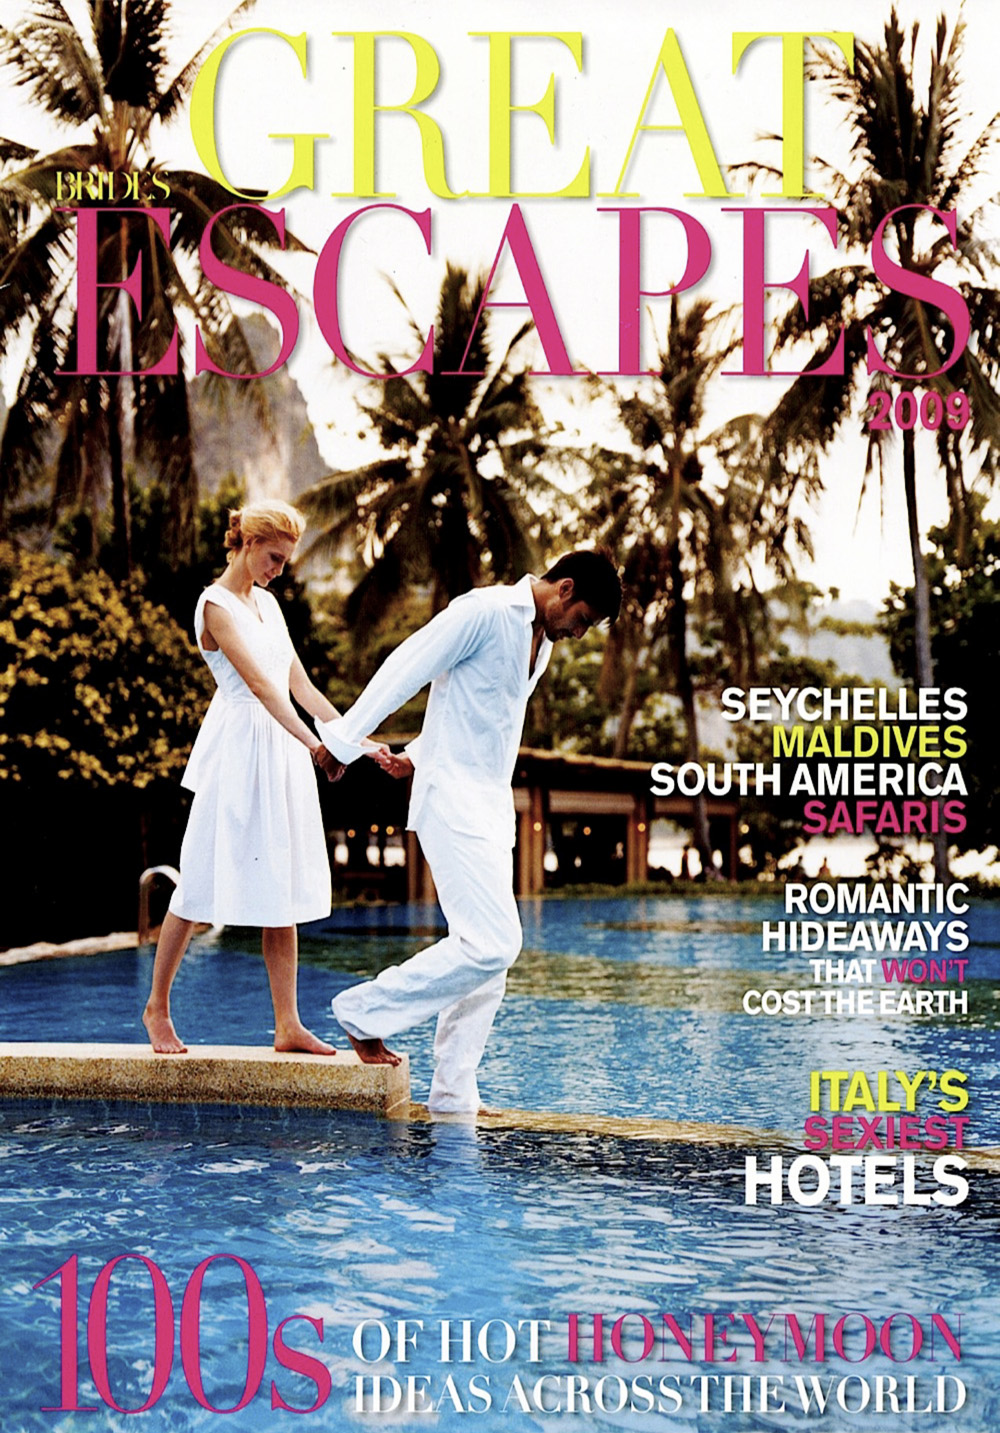 Brides Great Escapes